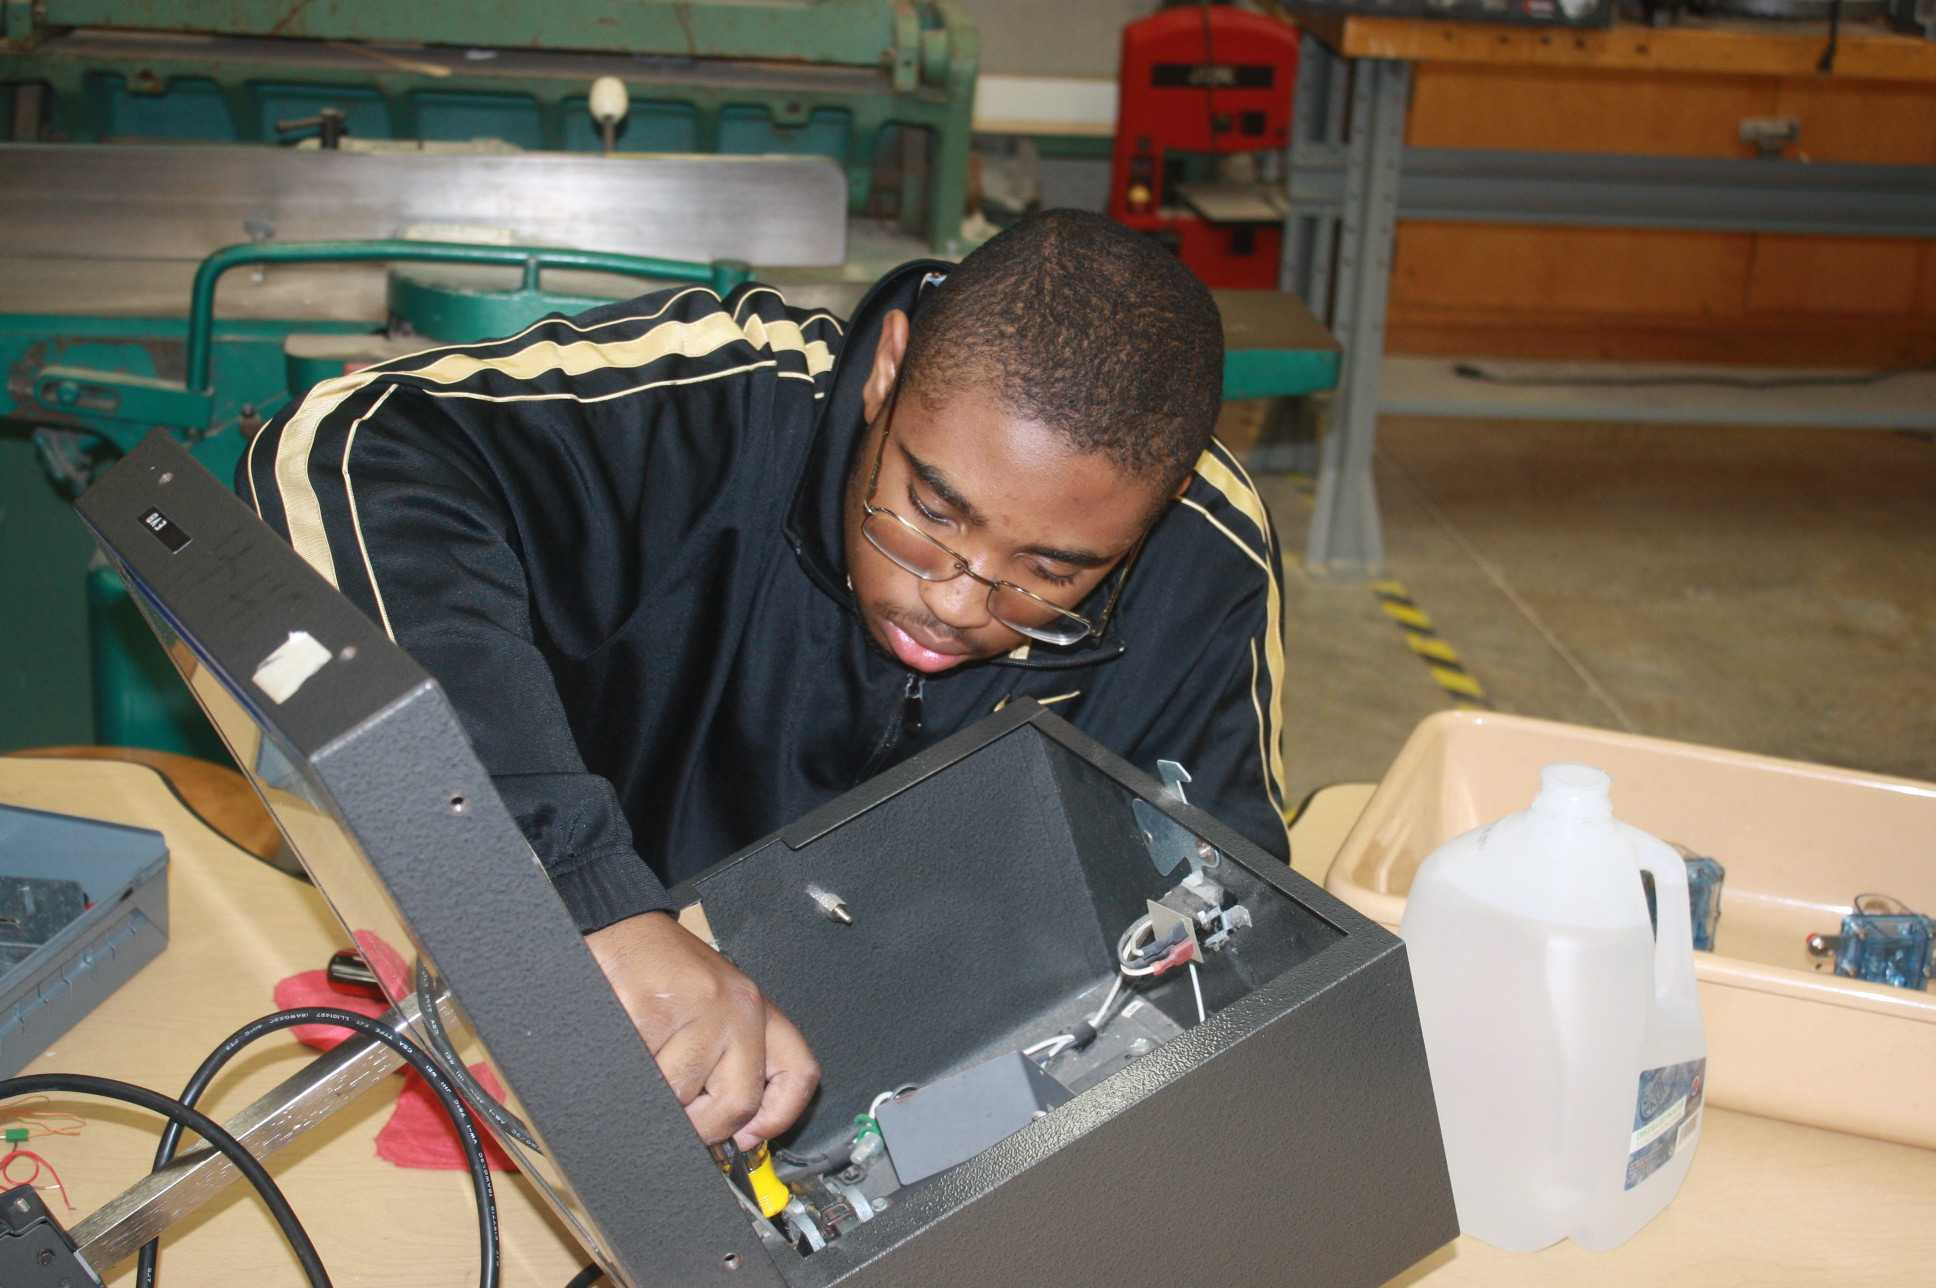 Junior Darrion Ward works on fixing an old projector to use the spare parts in the robotics class